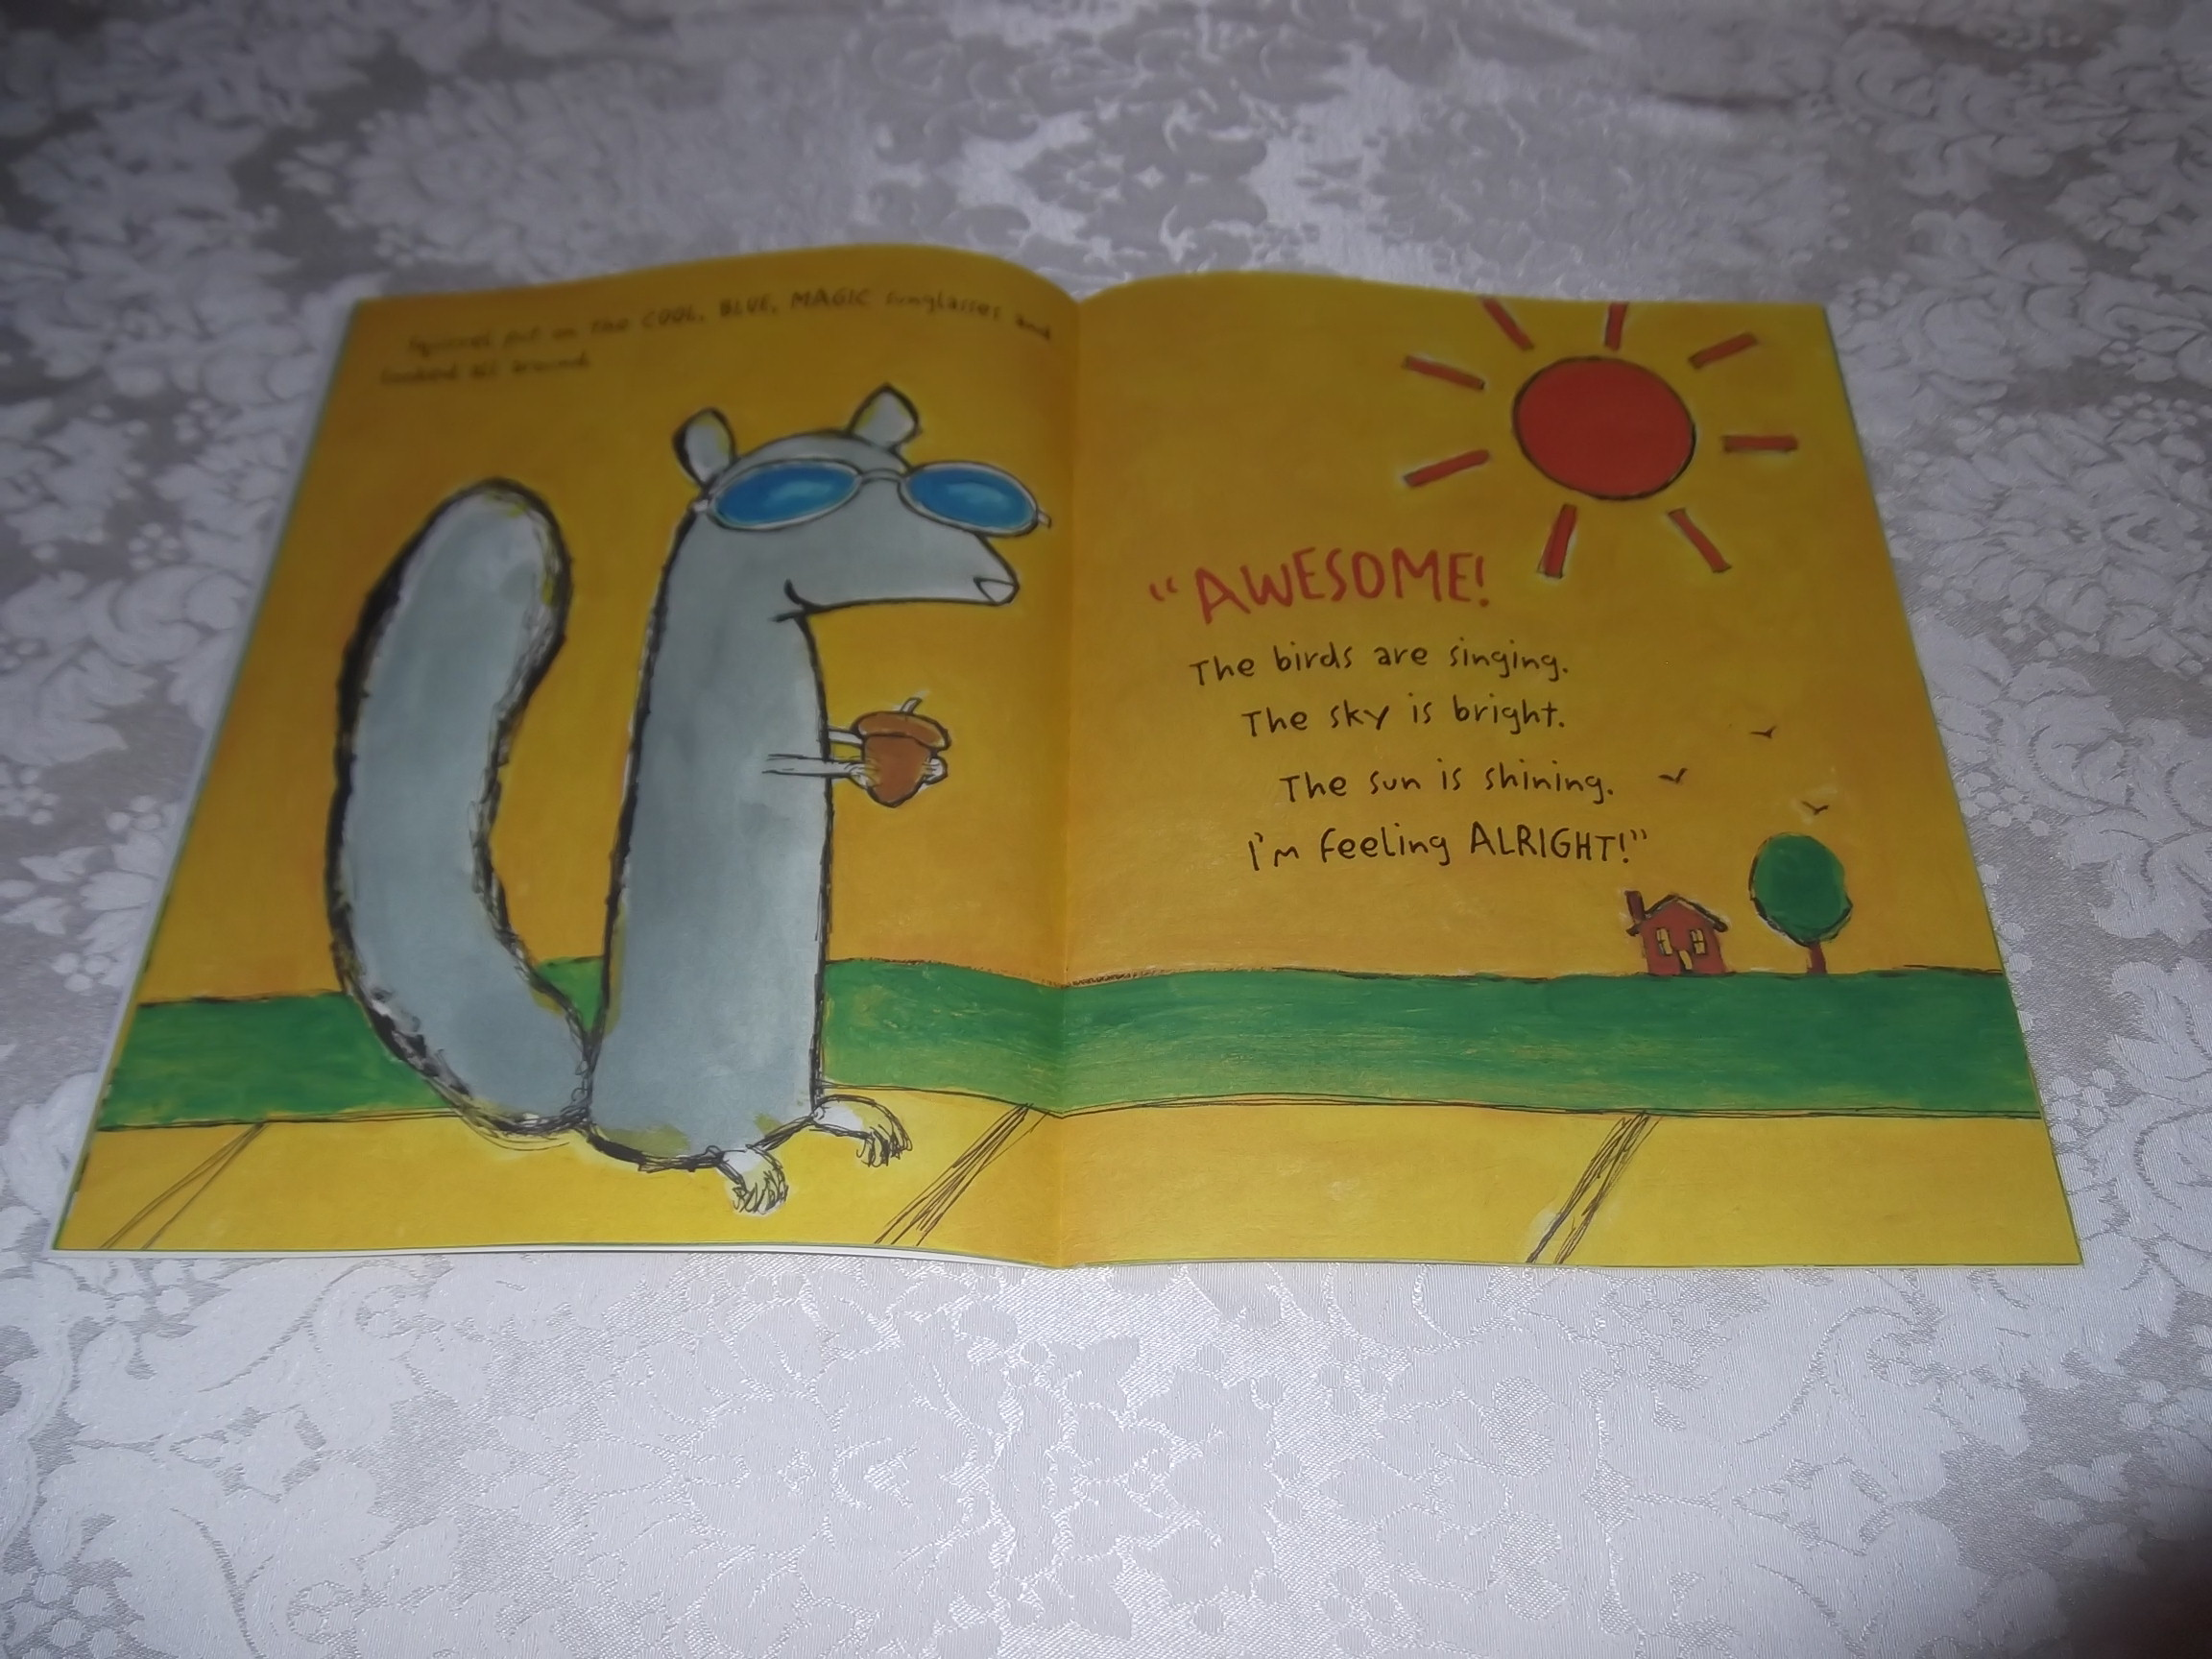 Image 4 of Pete the Cat and His Magic Sunglasses Kimberly and James Dean Brand New SC